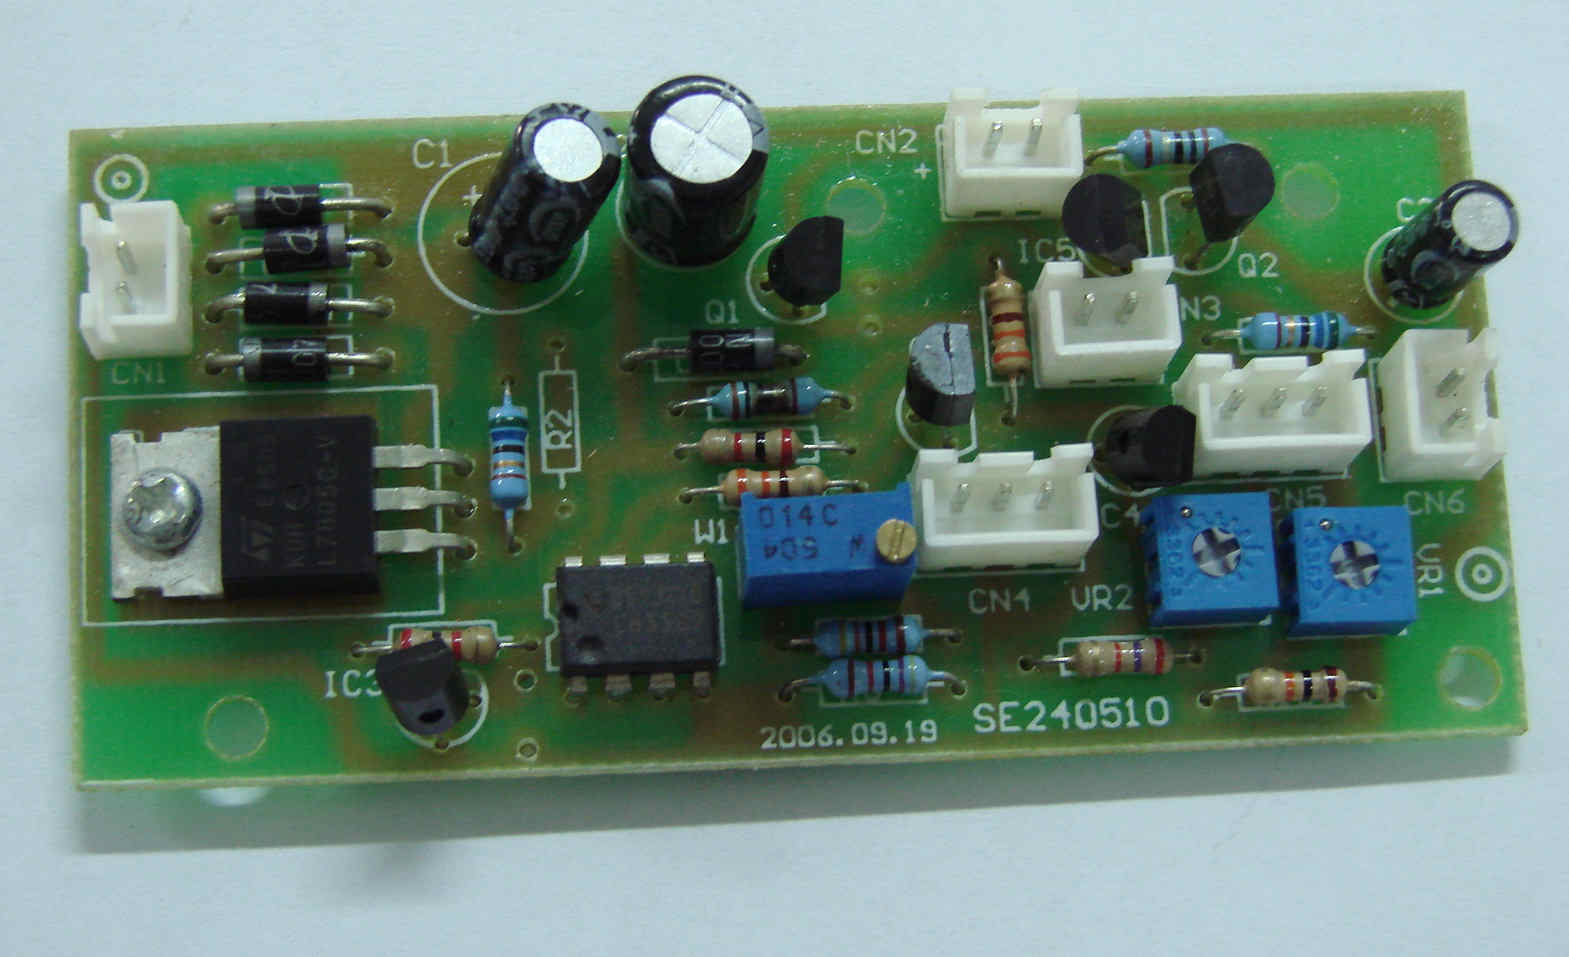 PCB assembly03